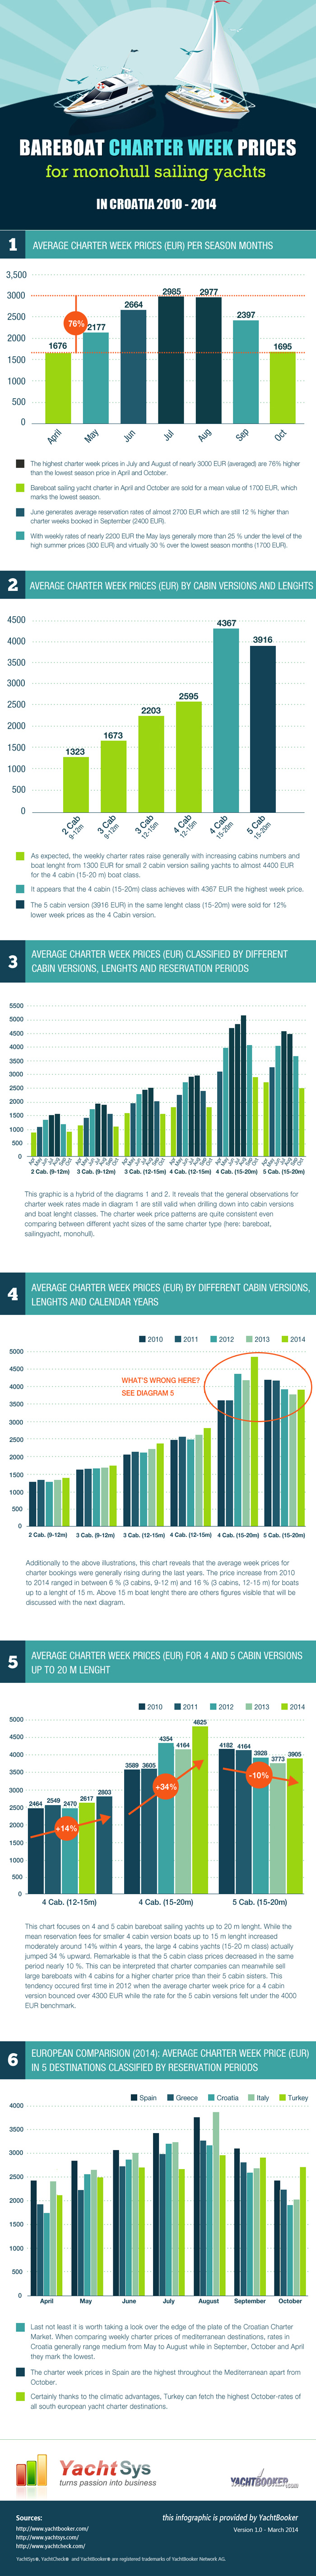 Infographic Bareboat Charter Prices Croatia